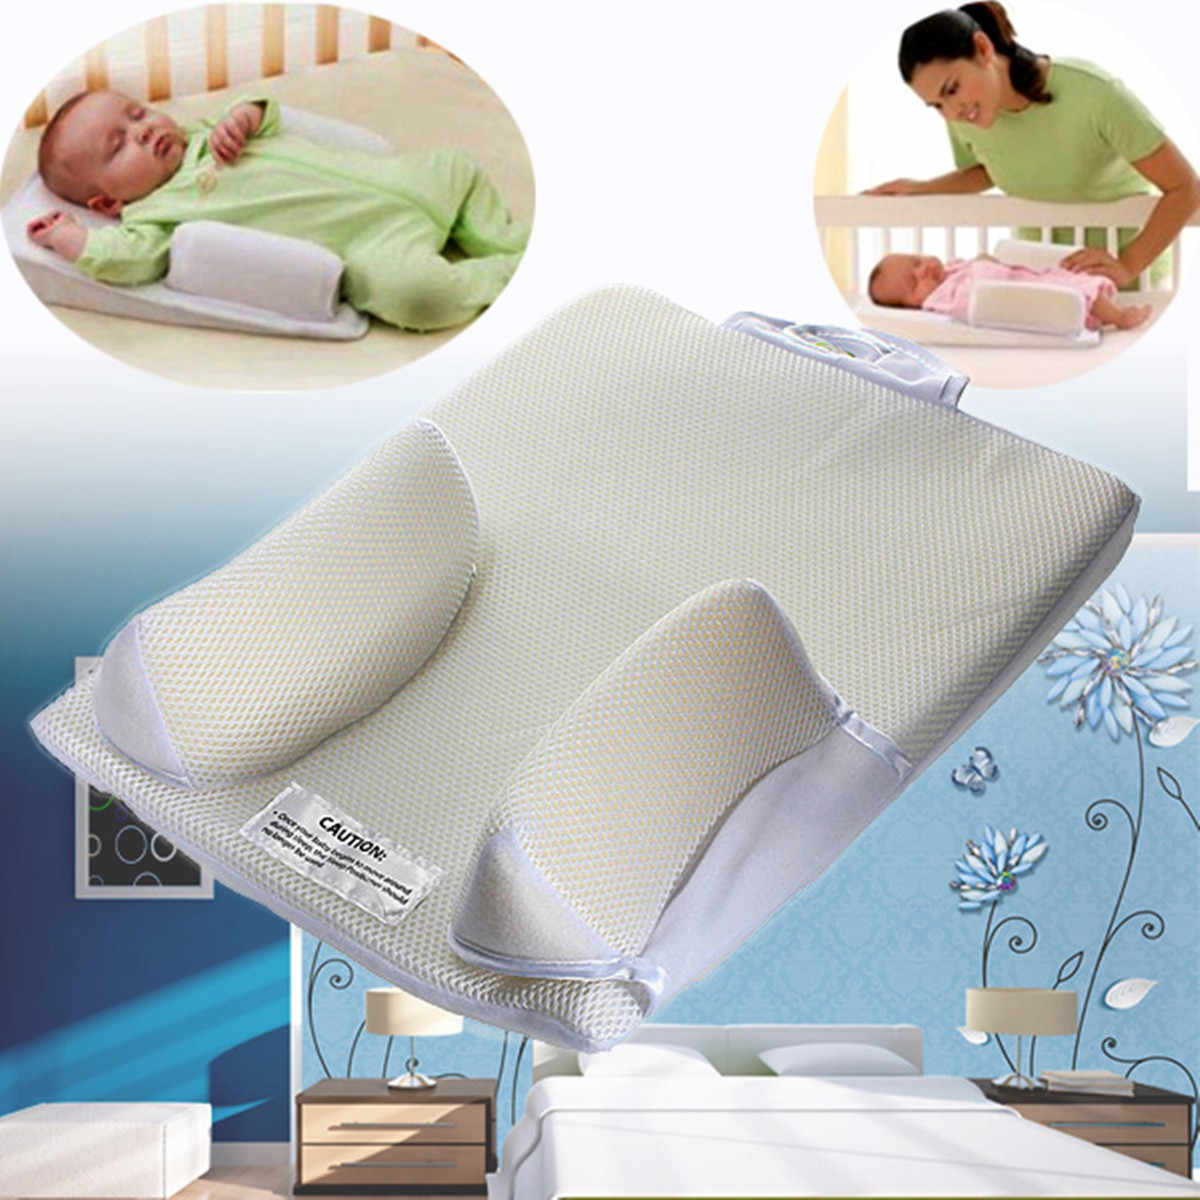 Image result for Infant Sleep System Prevent Flat Head Ultimate Vent Fixed Positioner Baby Pillow #H055#